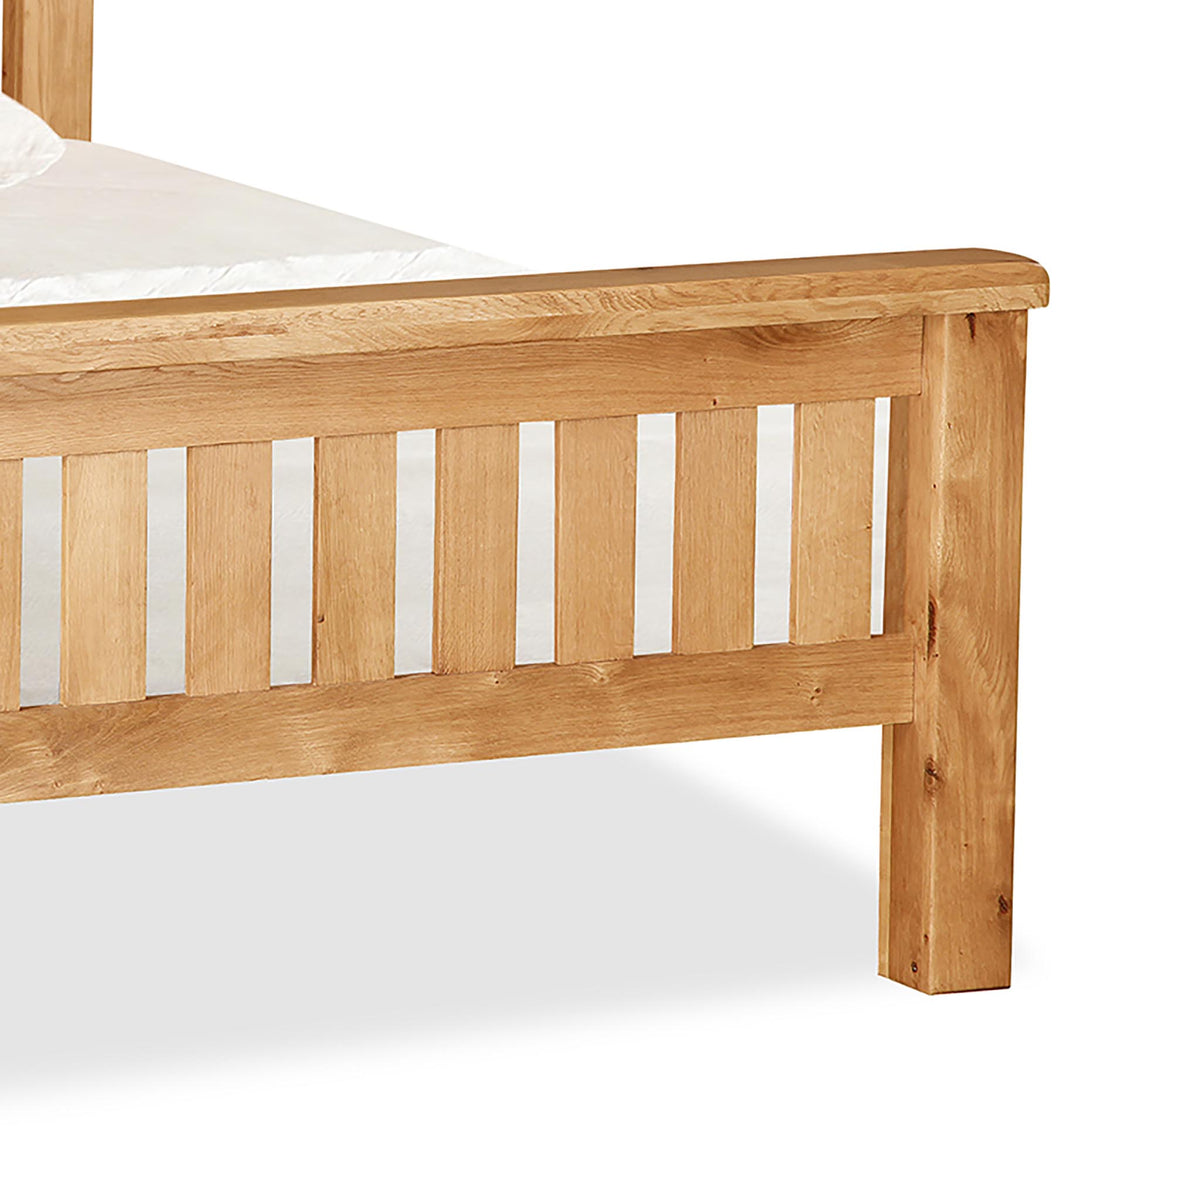 Zelah Oak 4'6 Slatted Bed - Close Up of Footer of Bed